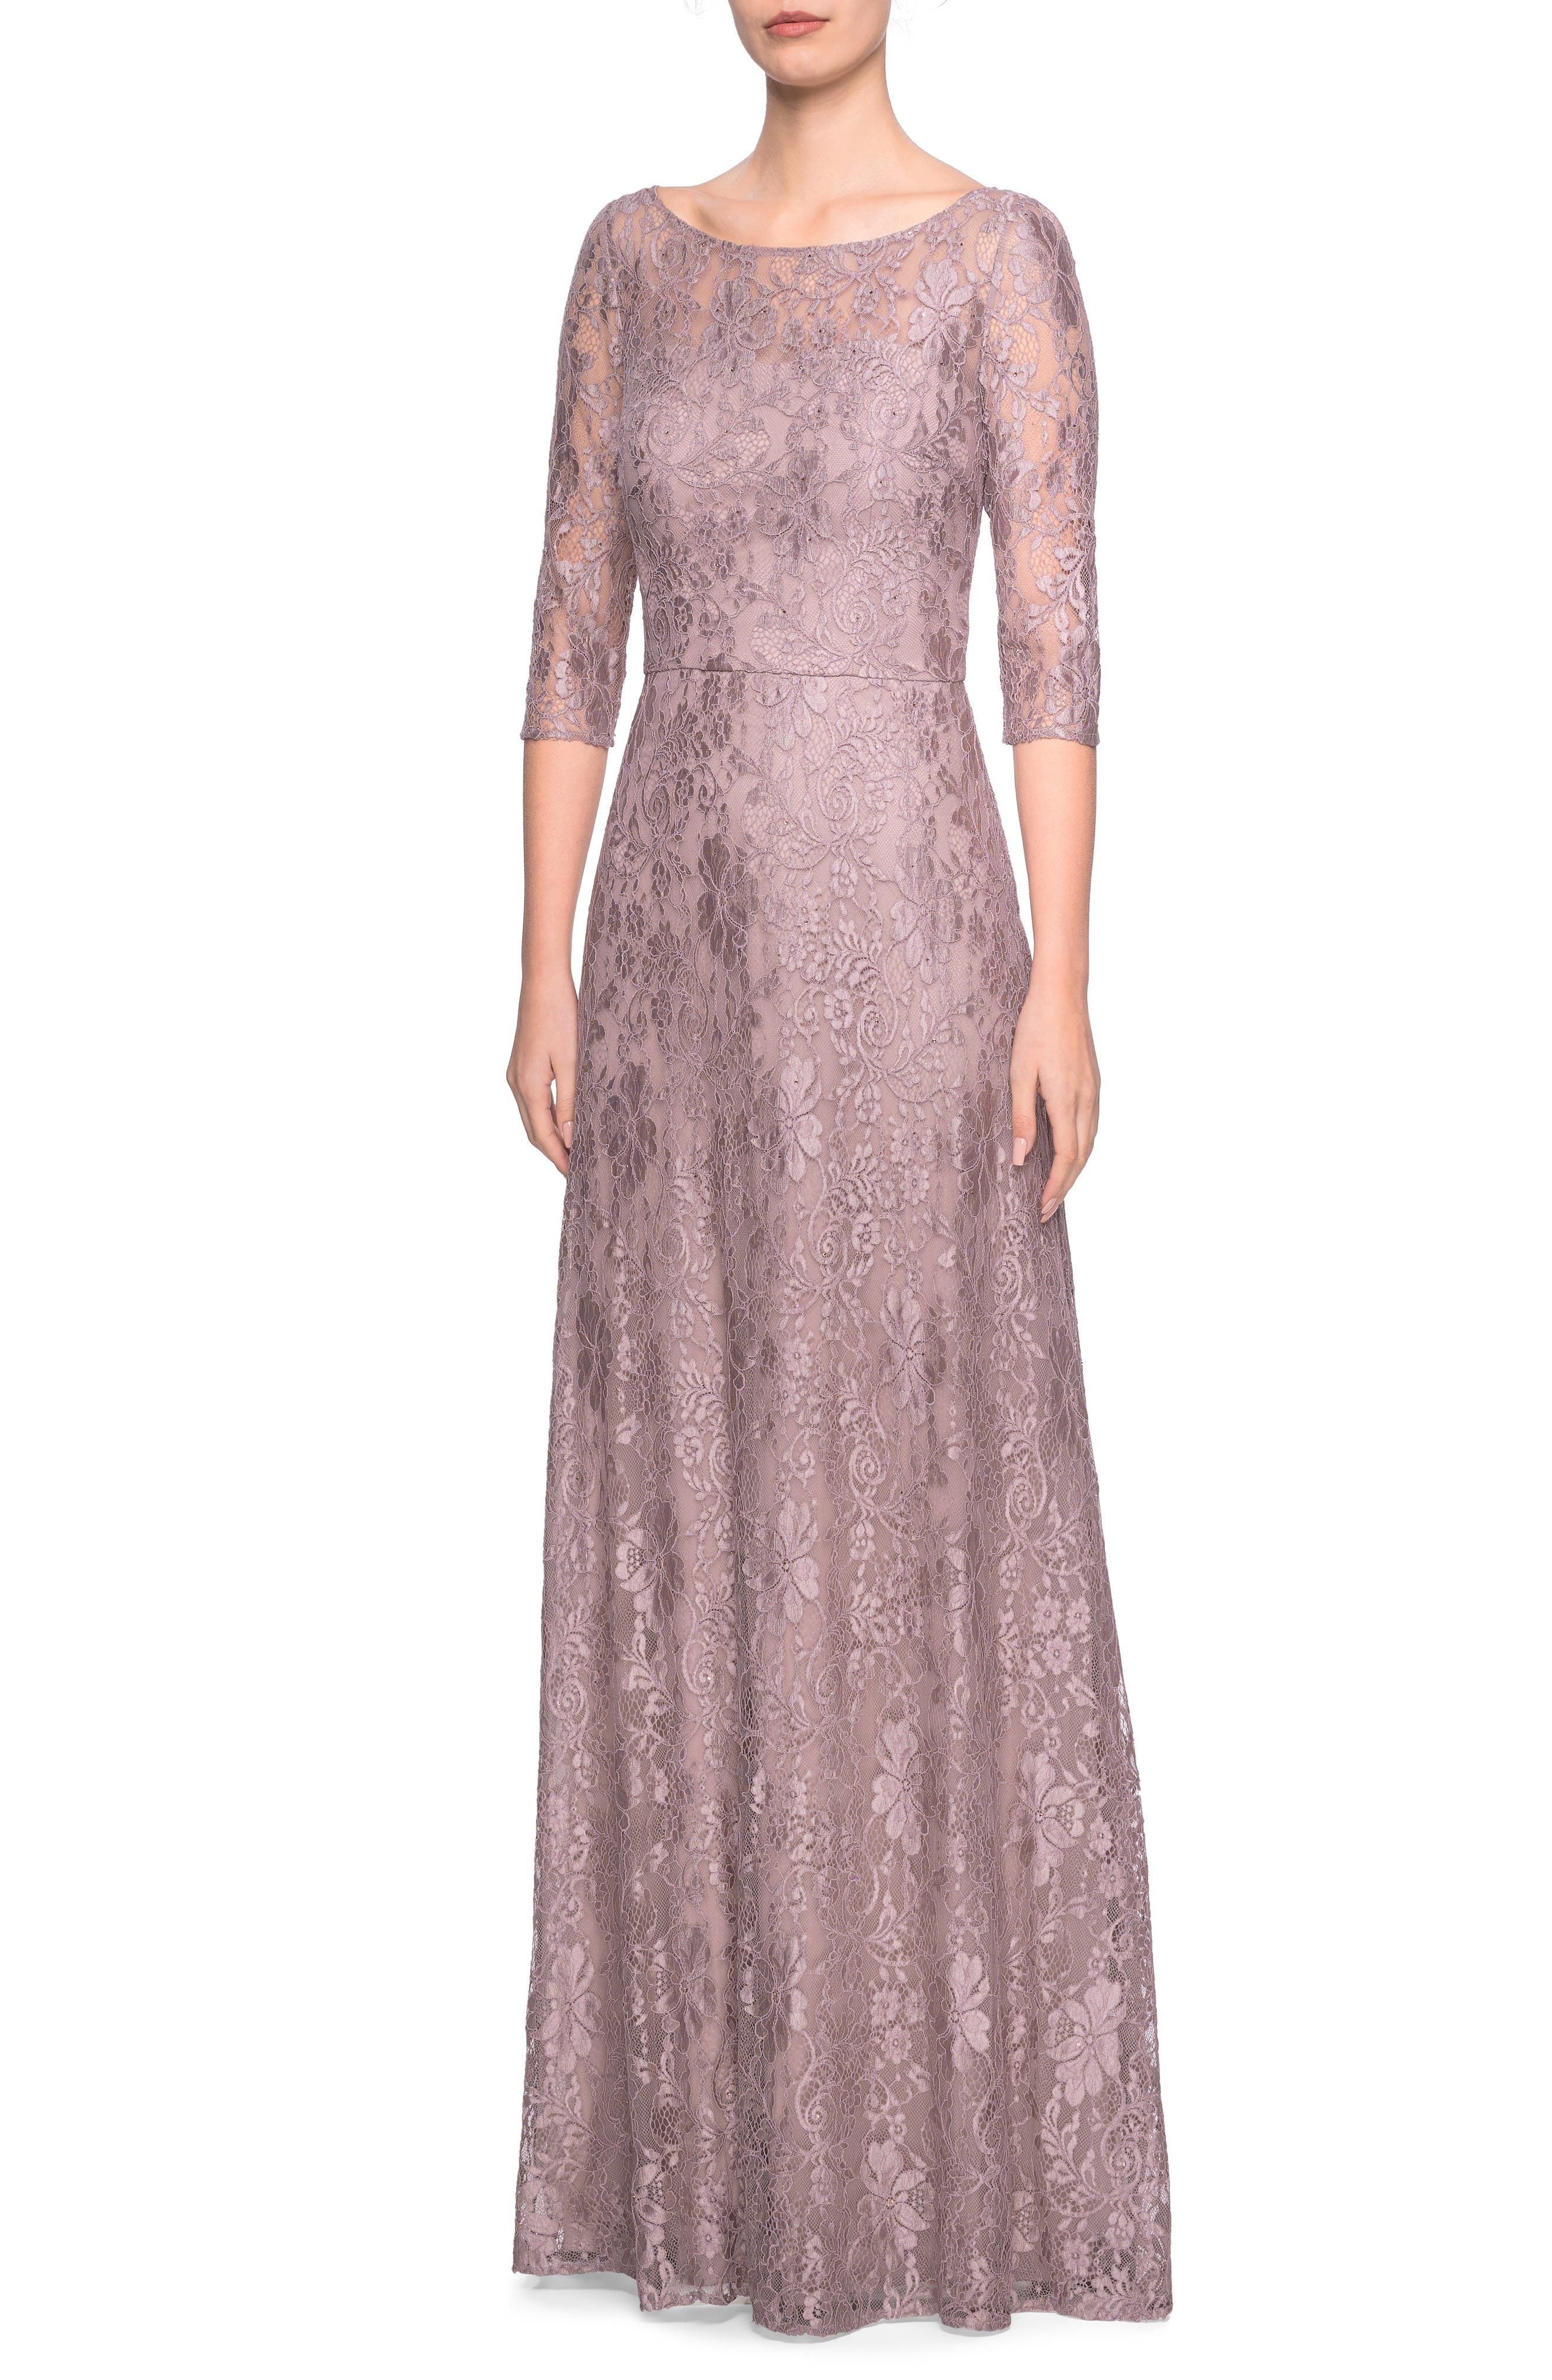 La Femme Lace Evening Dress, Brown